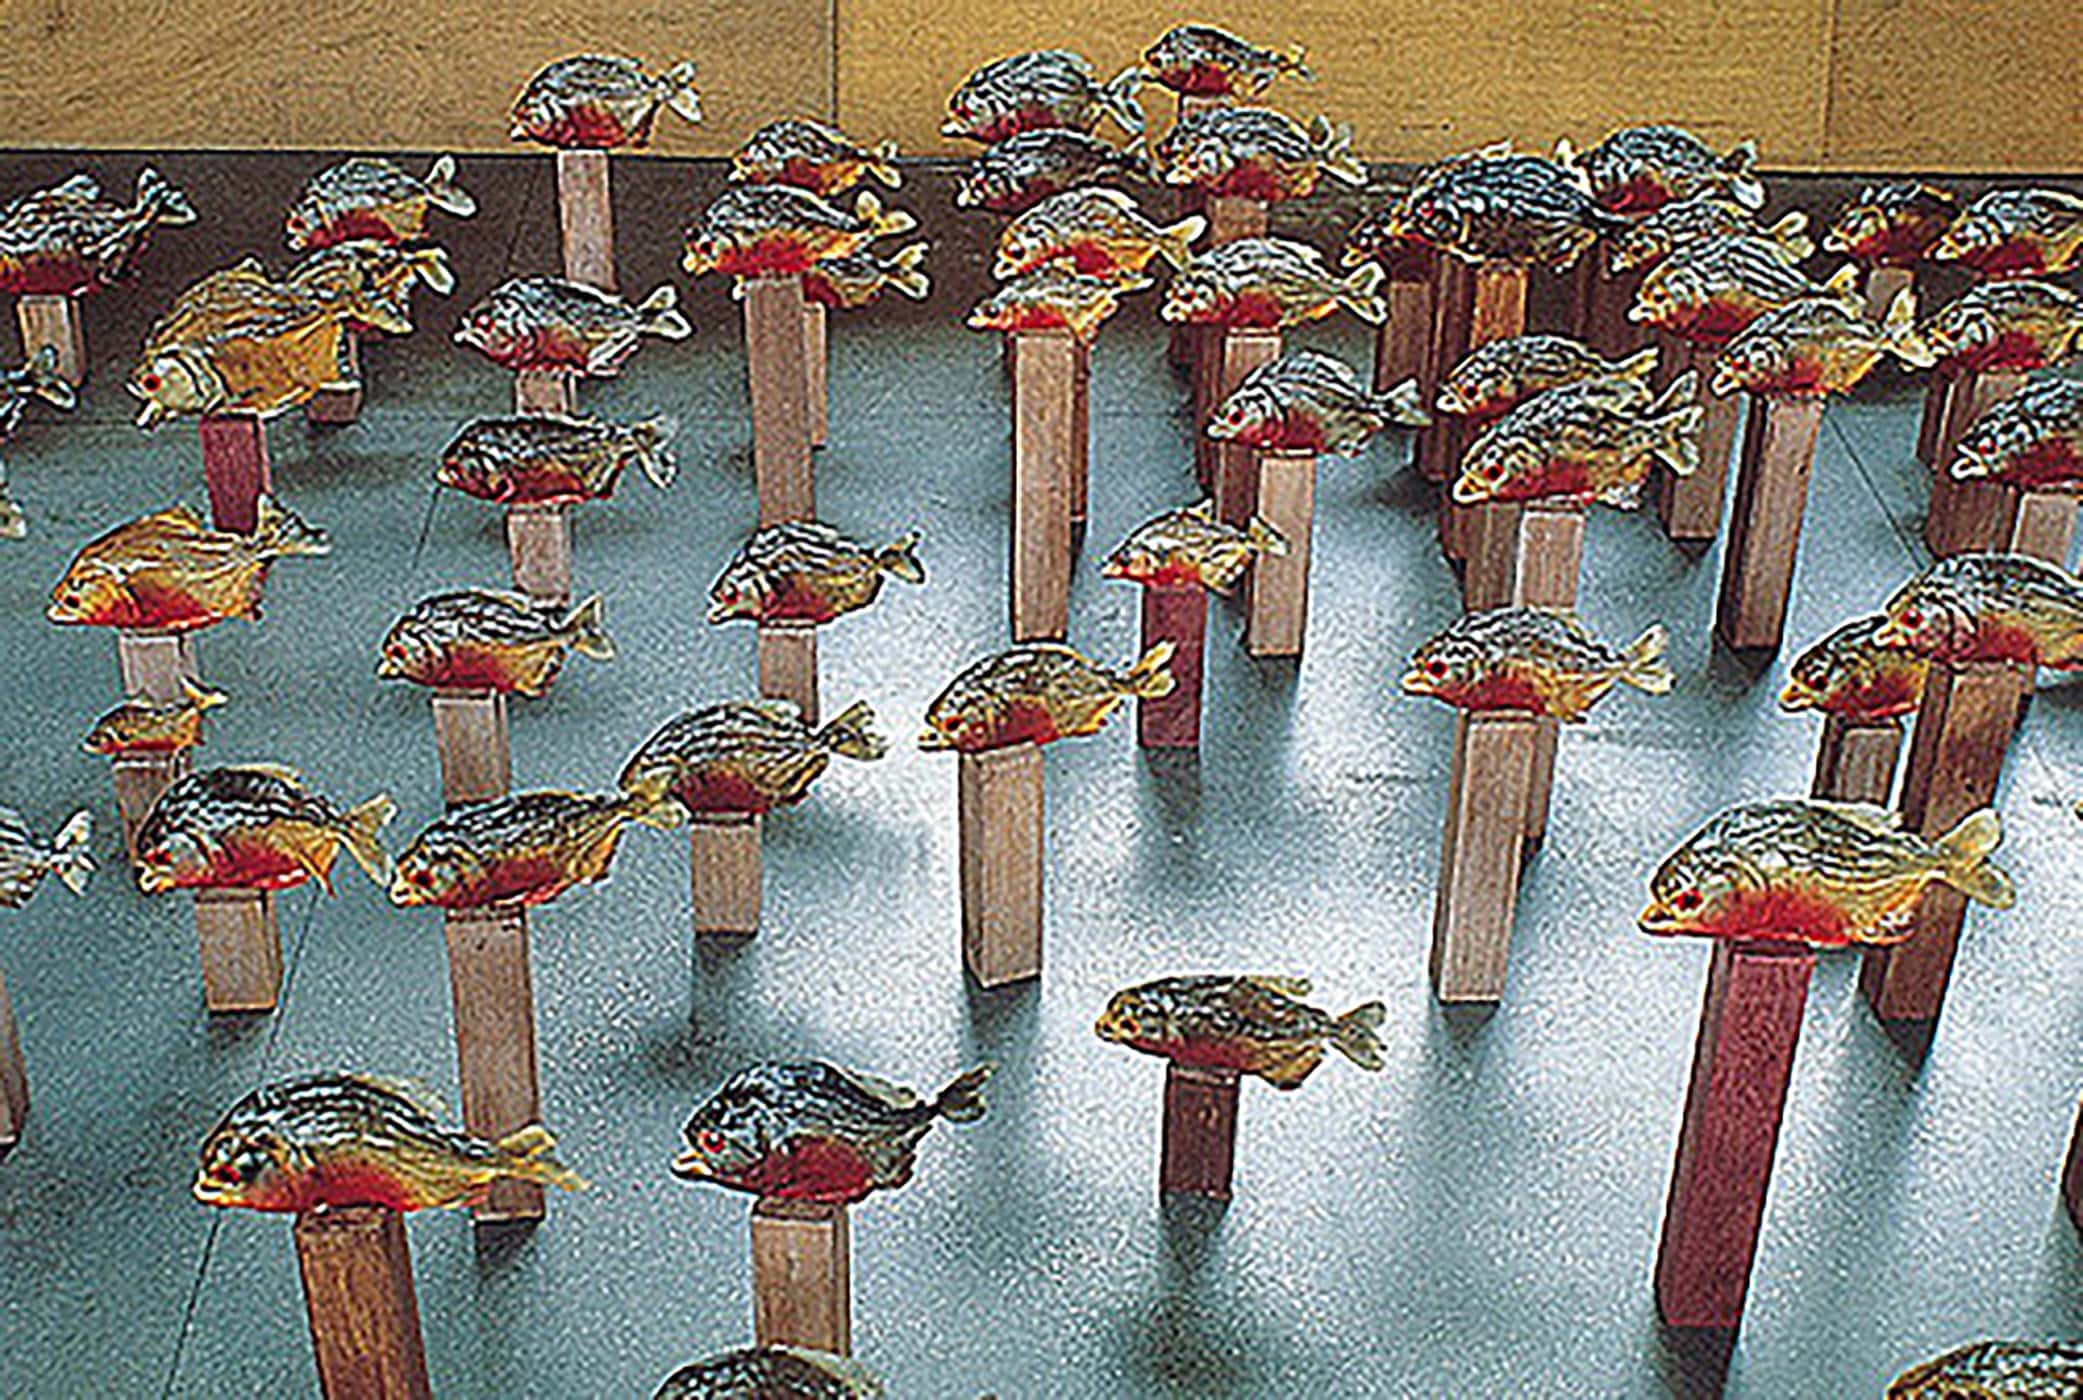 1992_colombian materials_amazonas_01